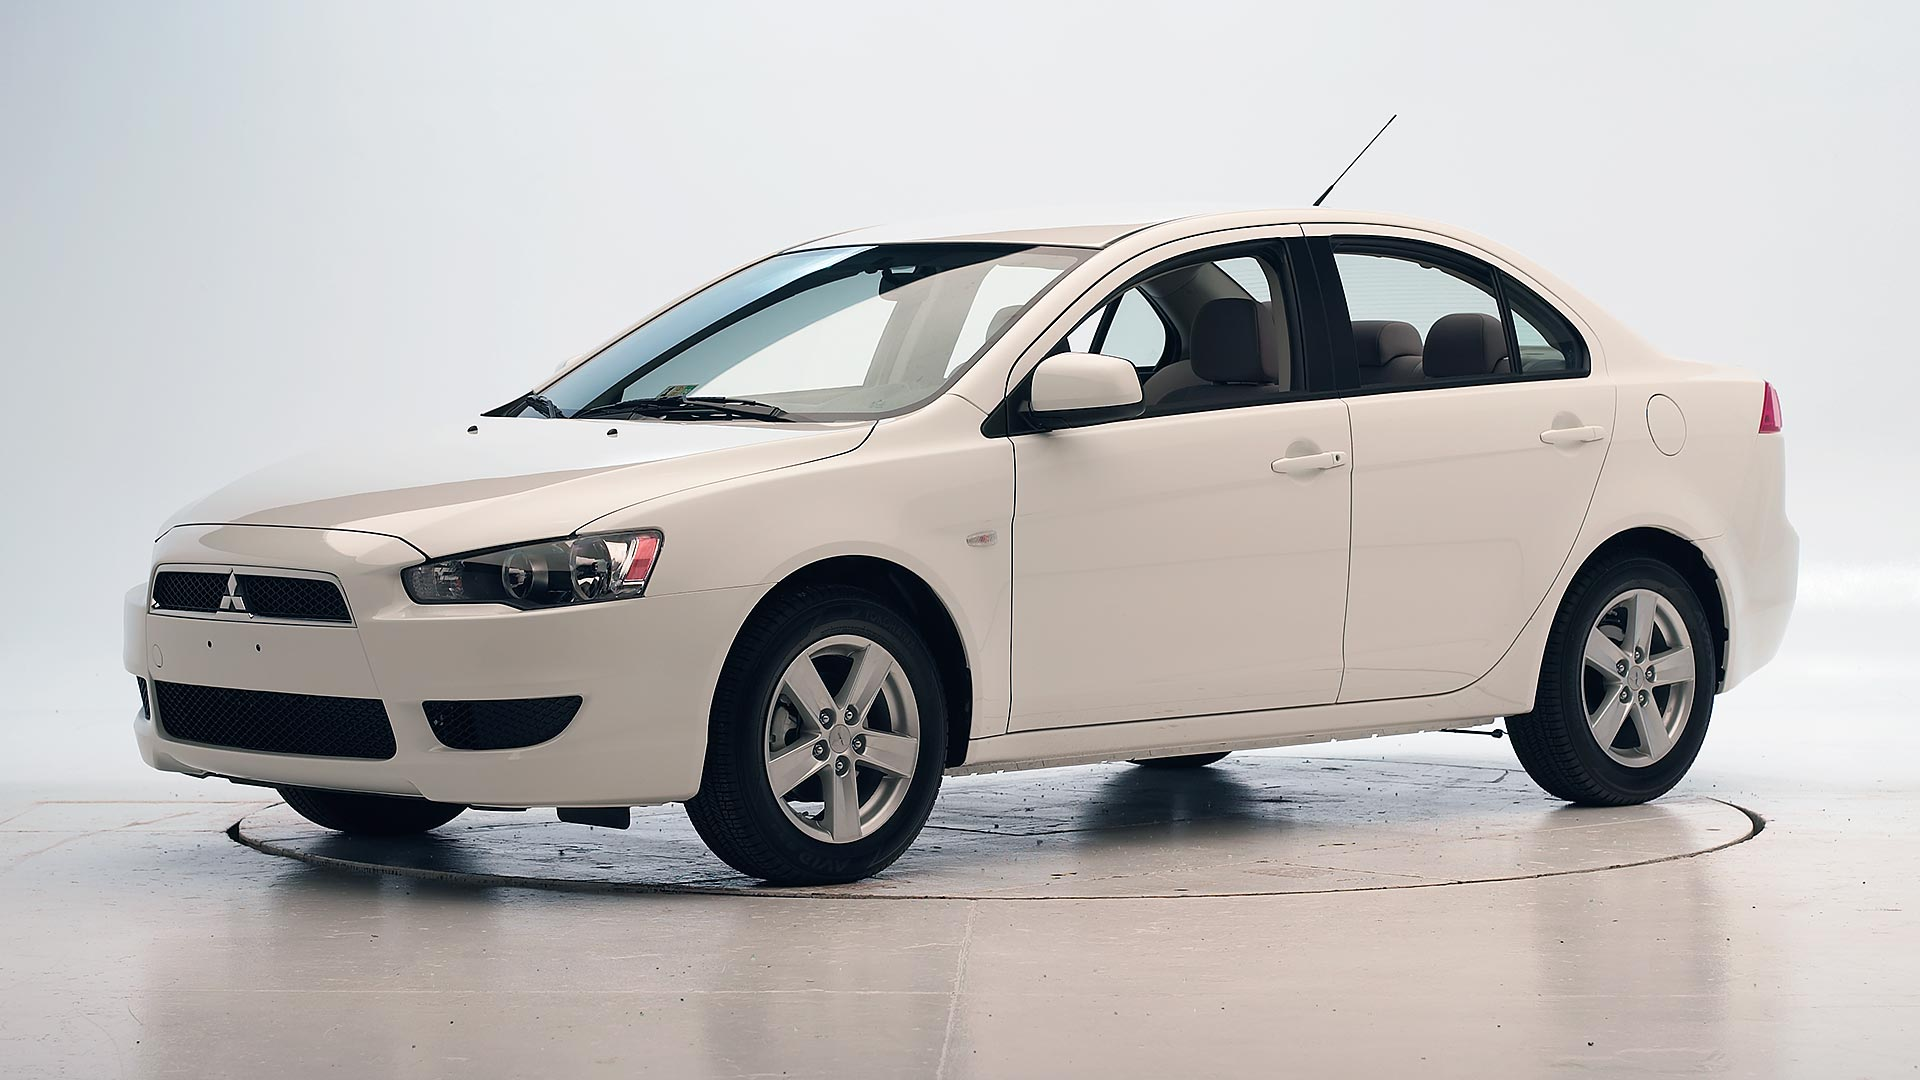 2008 Mitsubishi Lancer 4-door sedan